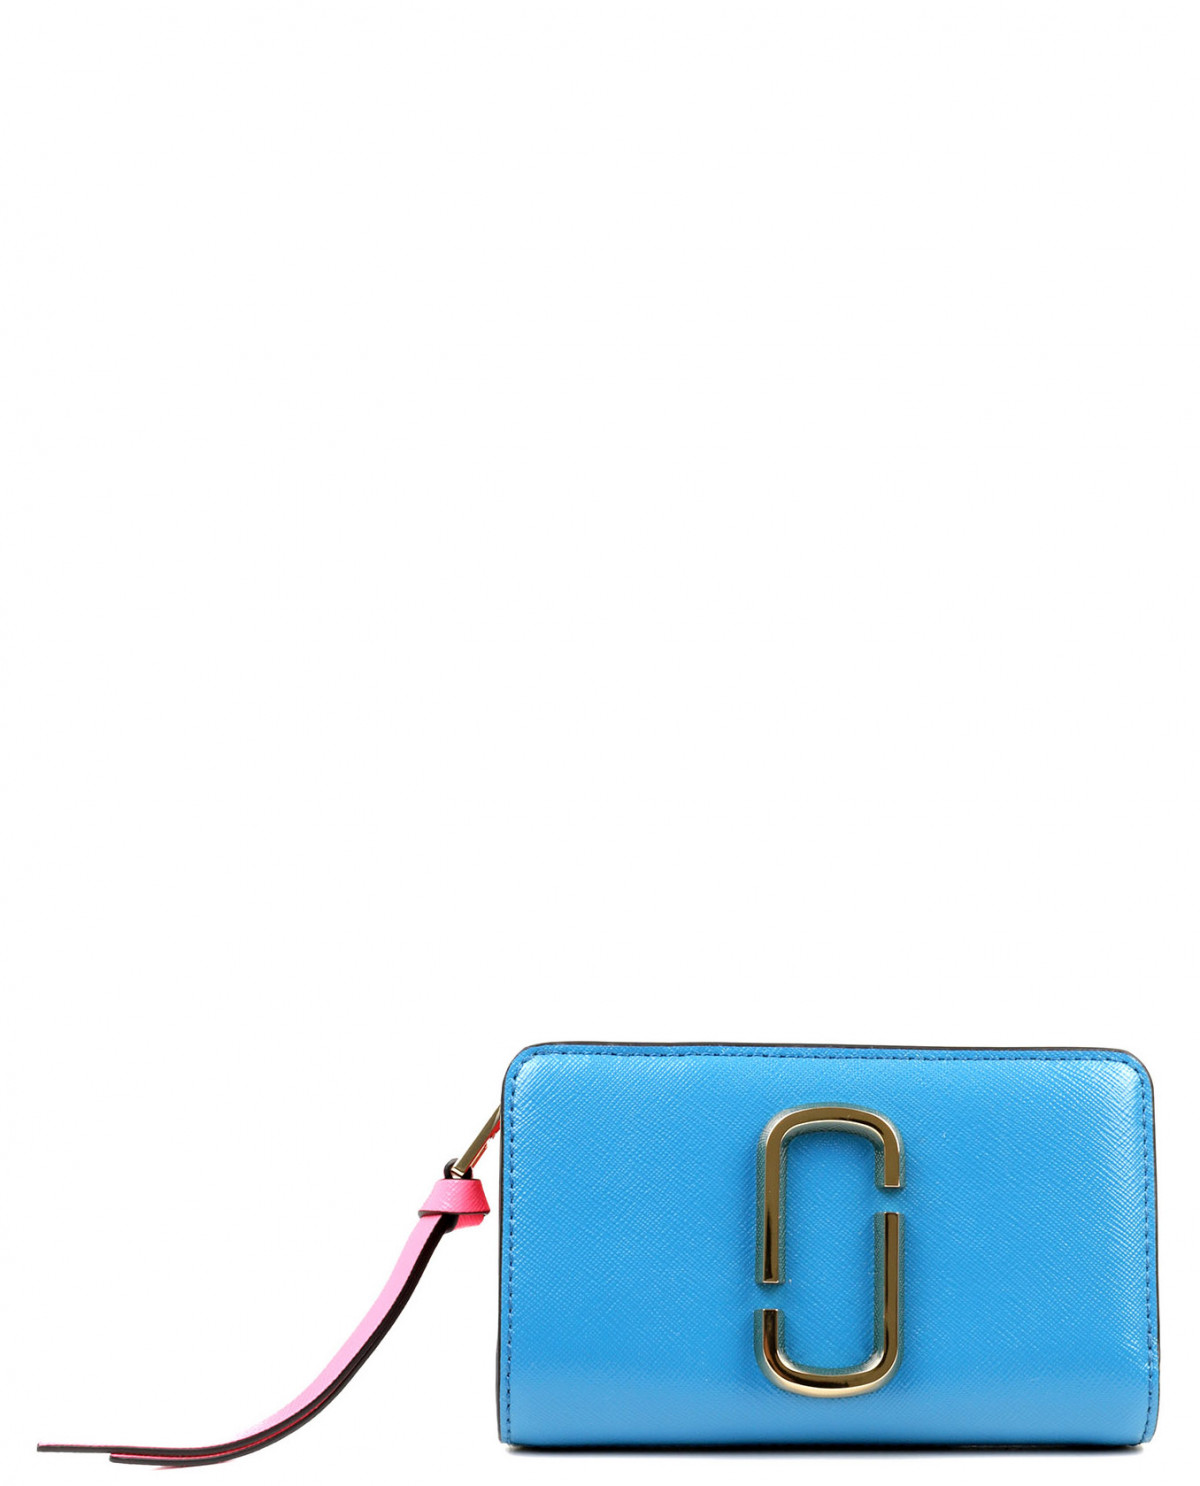 Marc Jacobs blue Snapshot compact wallet